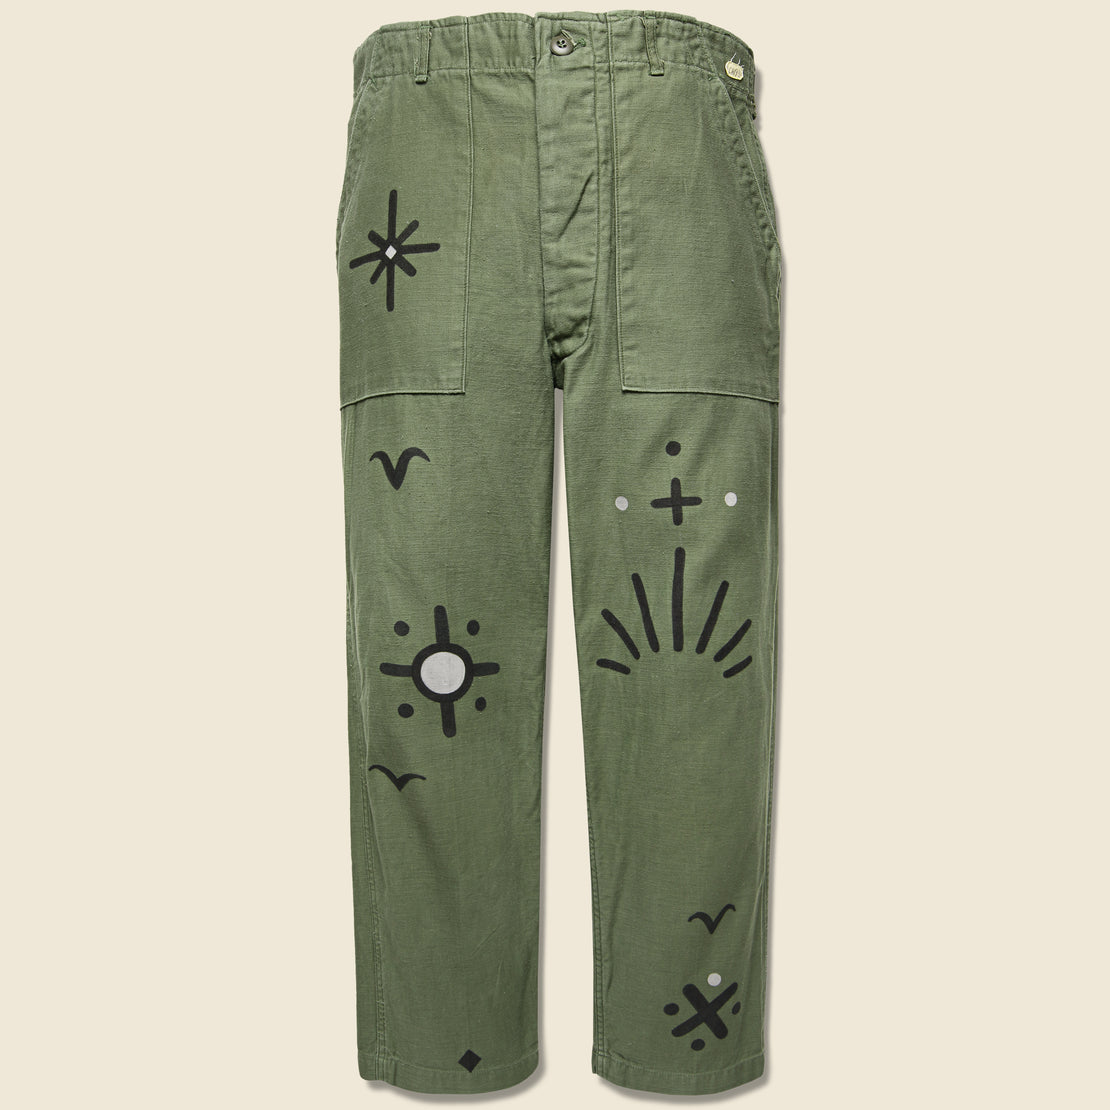 Tom Jean Webb Vintage Military-Issued Sateen Fatigues - Birds